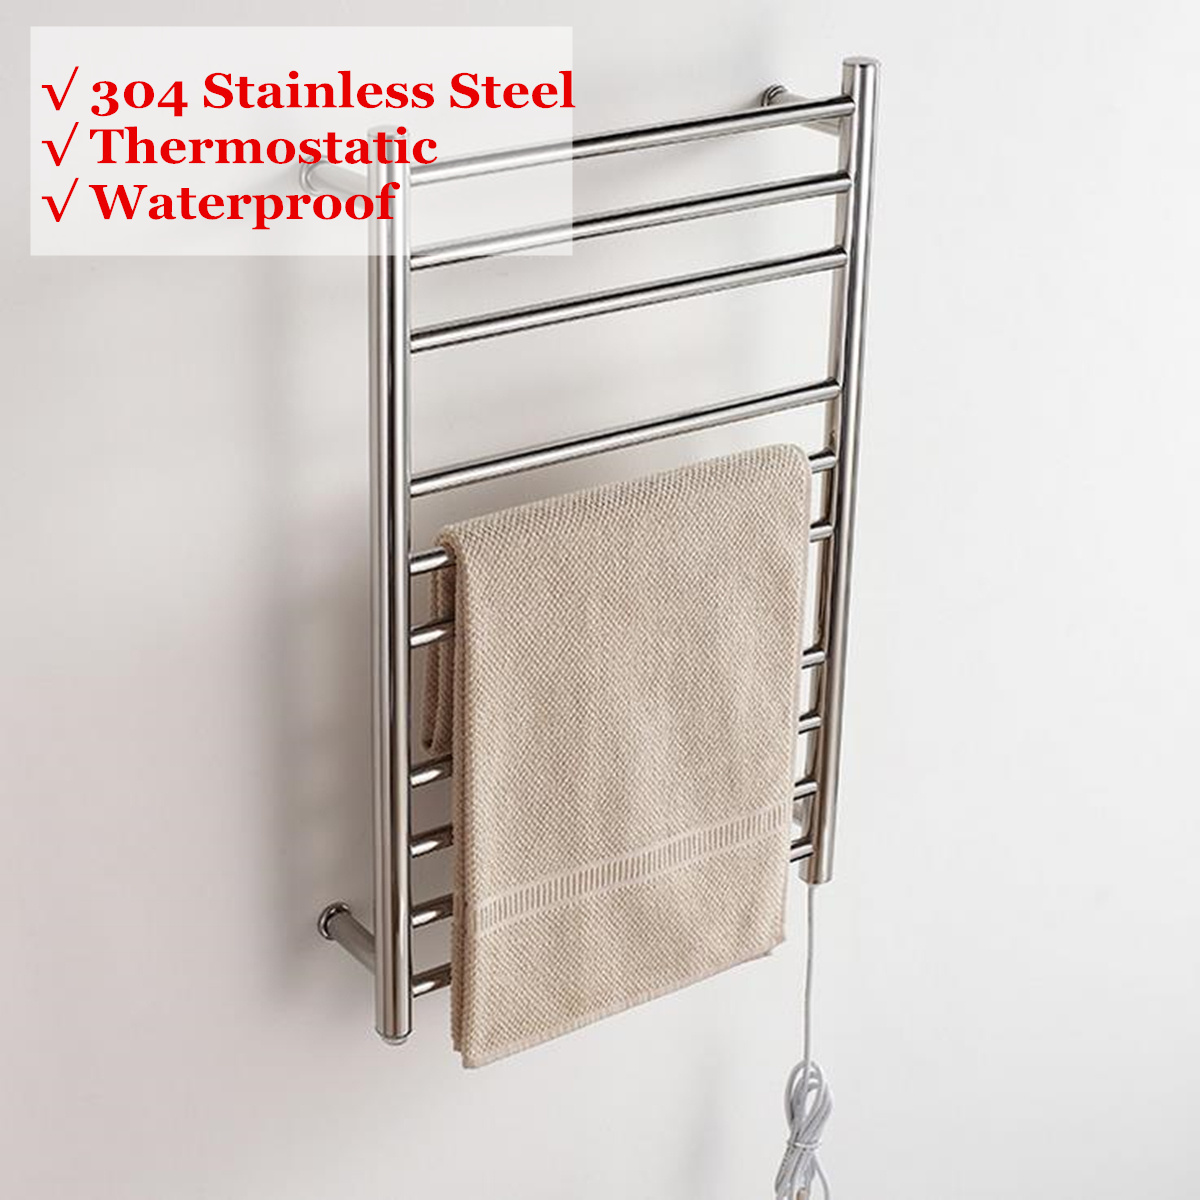 88W Electric Heated Wall Mounted Towel Warmer Home Bathroom Accessories Towel Dryer Racks Heated Towel Rail Stainless Steel88W Electric Heated Wall Mounted Towel Warmer Home Bathroom Accessories Towel Dryer Racks Heated Towel Rail Stainless Steel